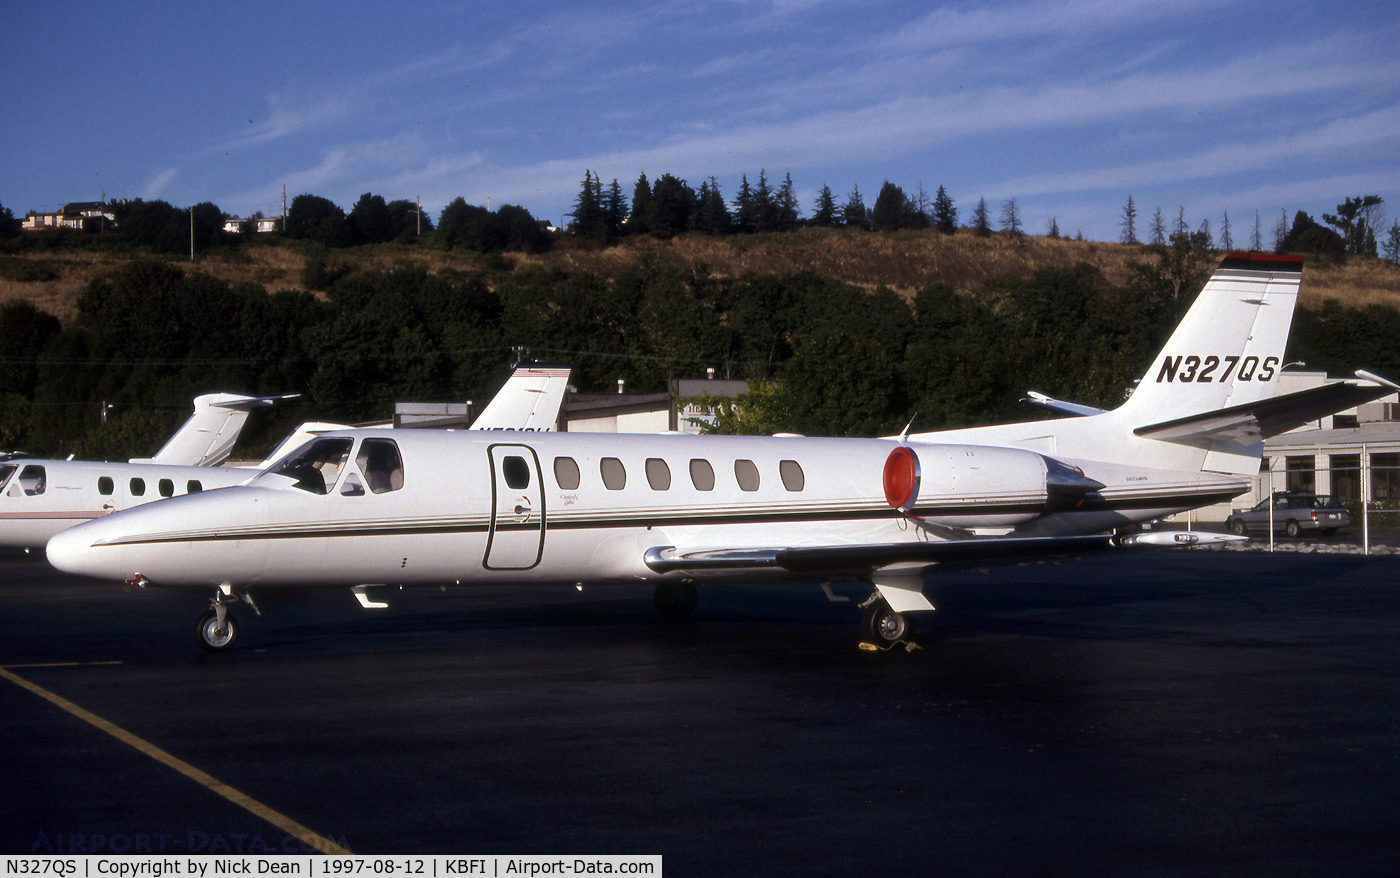 N327QS, 1995 Cessna 560 Citation Ultra C/N 560-0327, KBFI